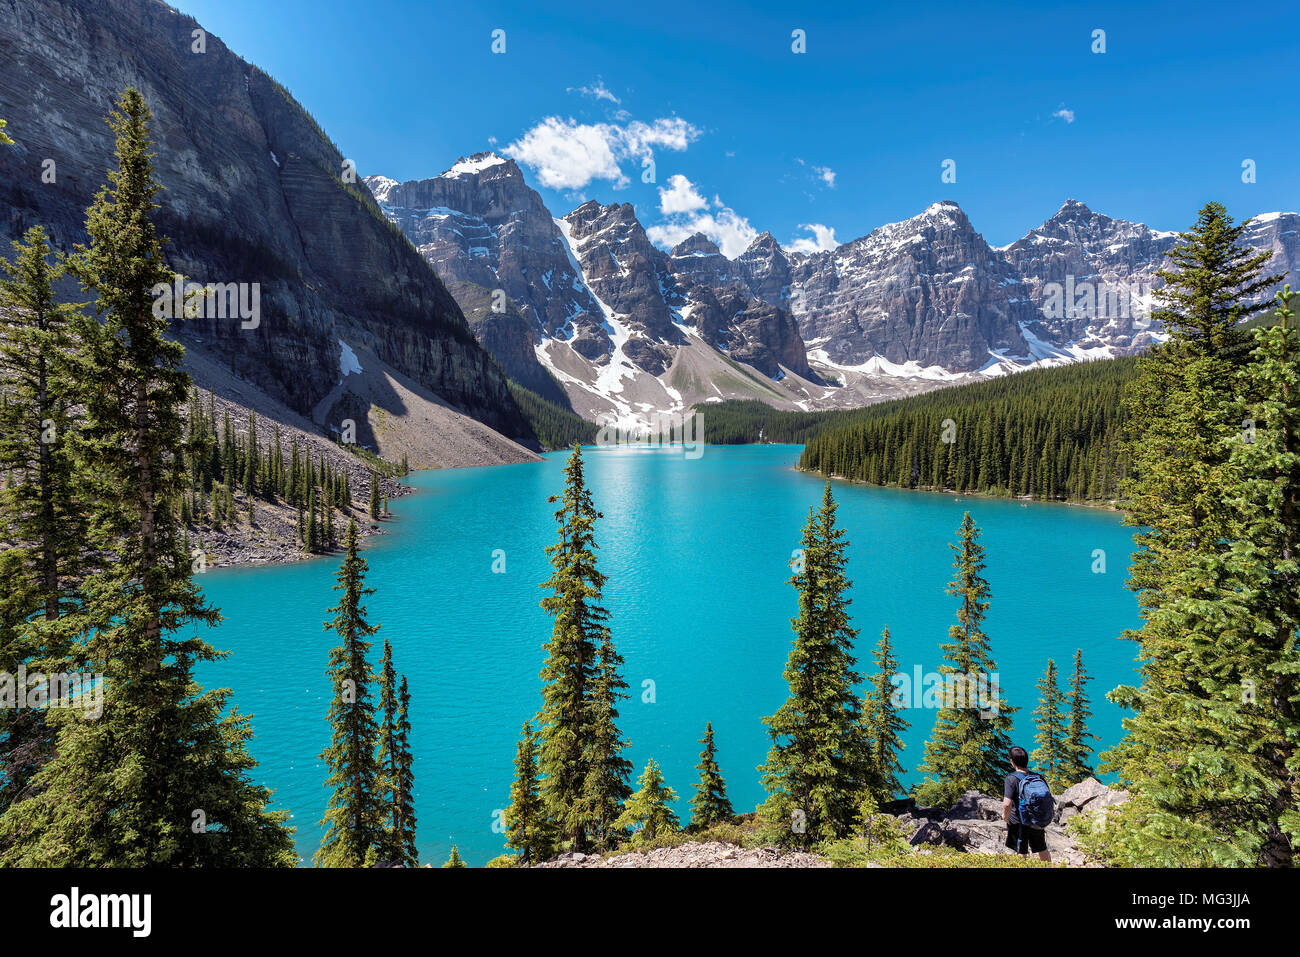 Moraine lake in Canadian Rockies, Banff National Park, Canada. - Stock Image